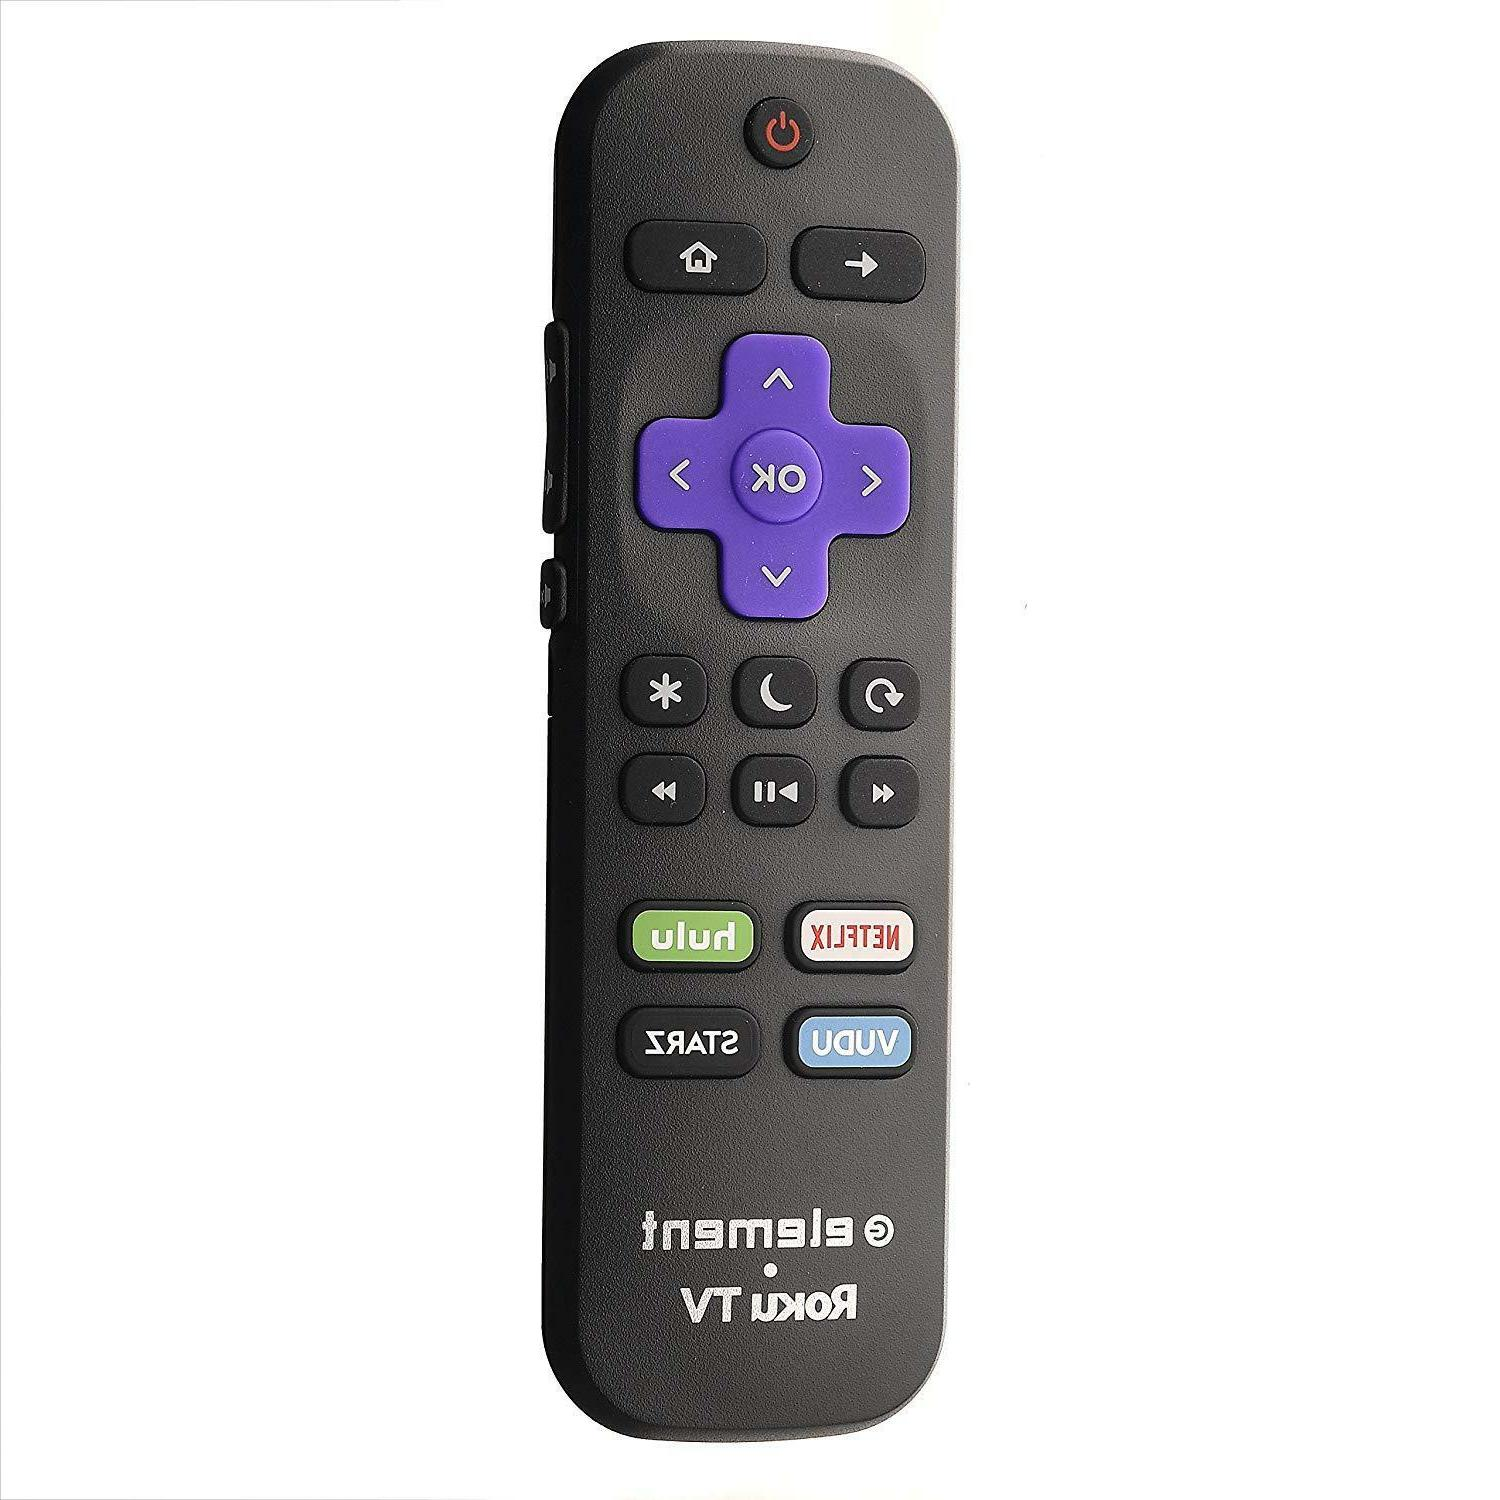 Element Roku ULTRA HD Remote Control - Netflix/hulu/Vudu/Starz